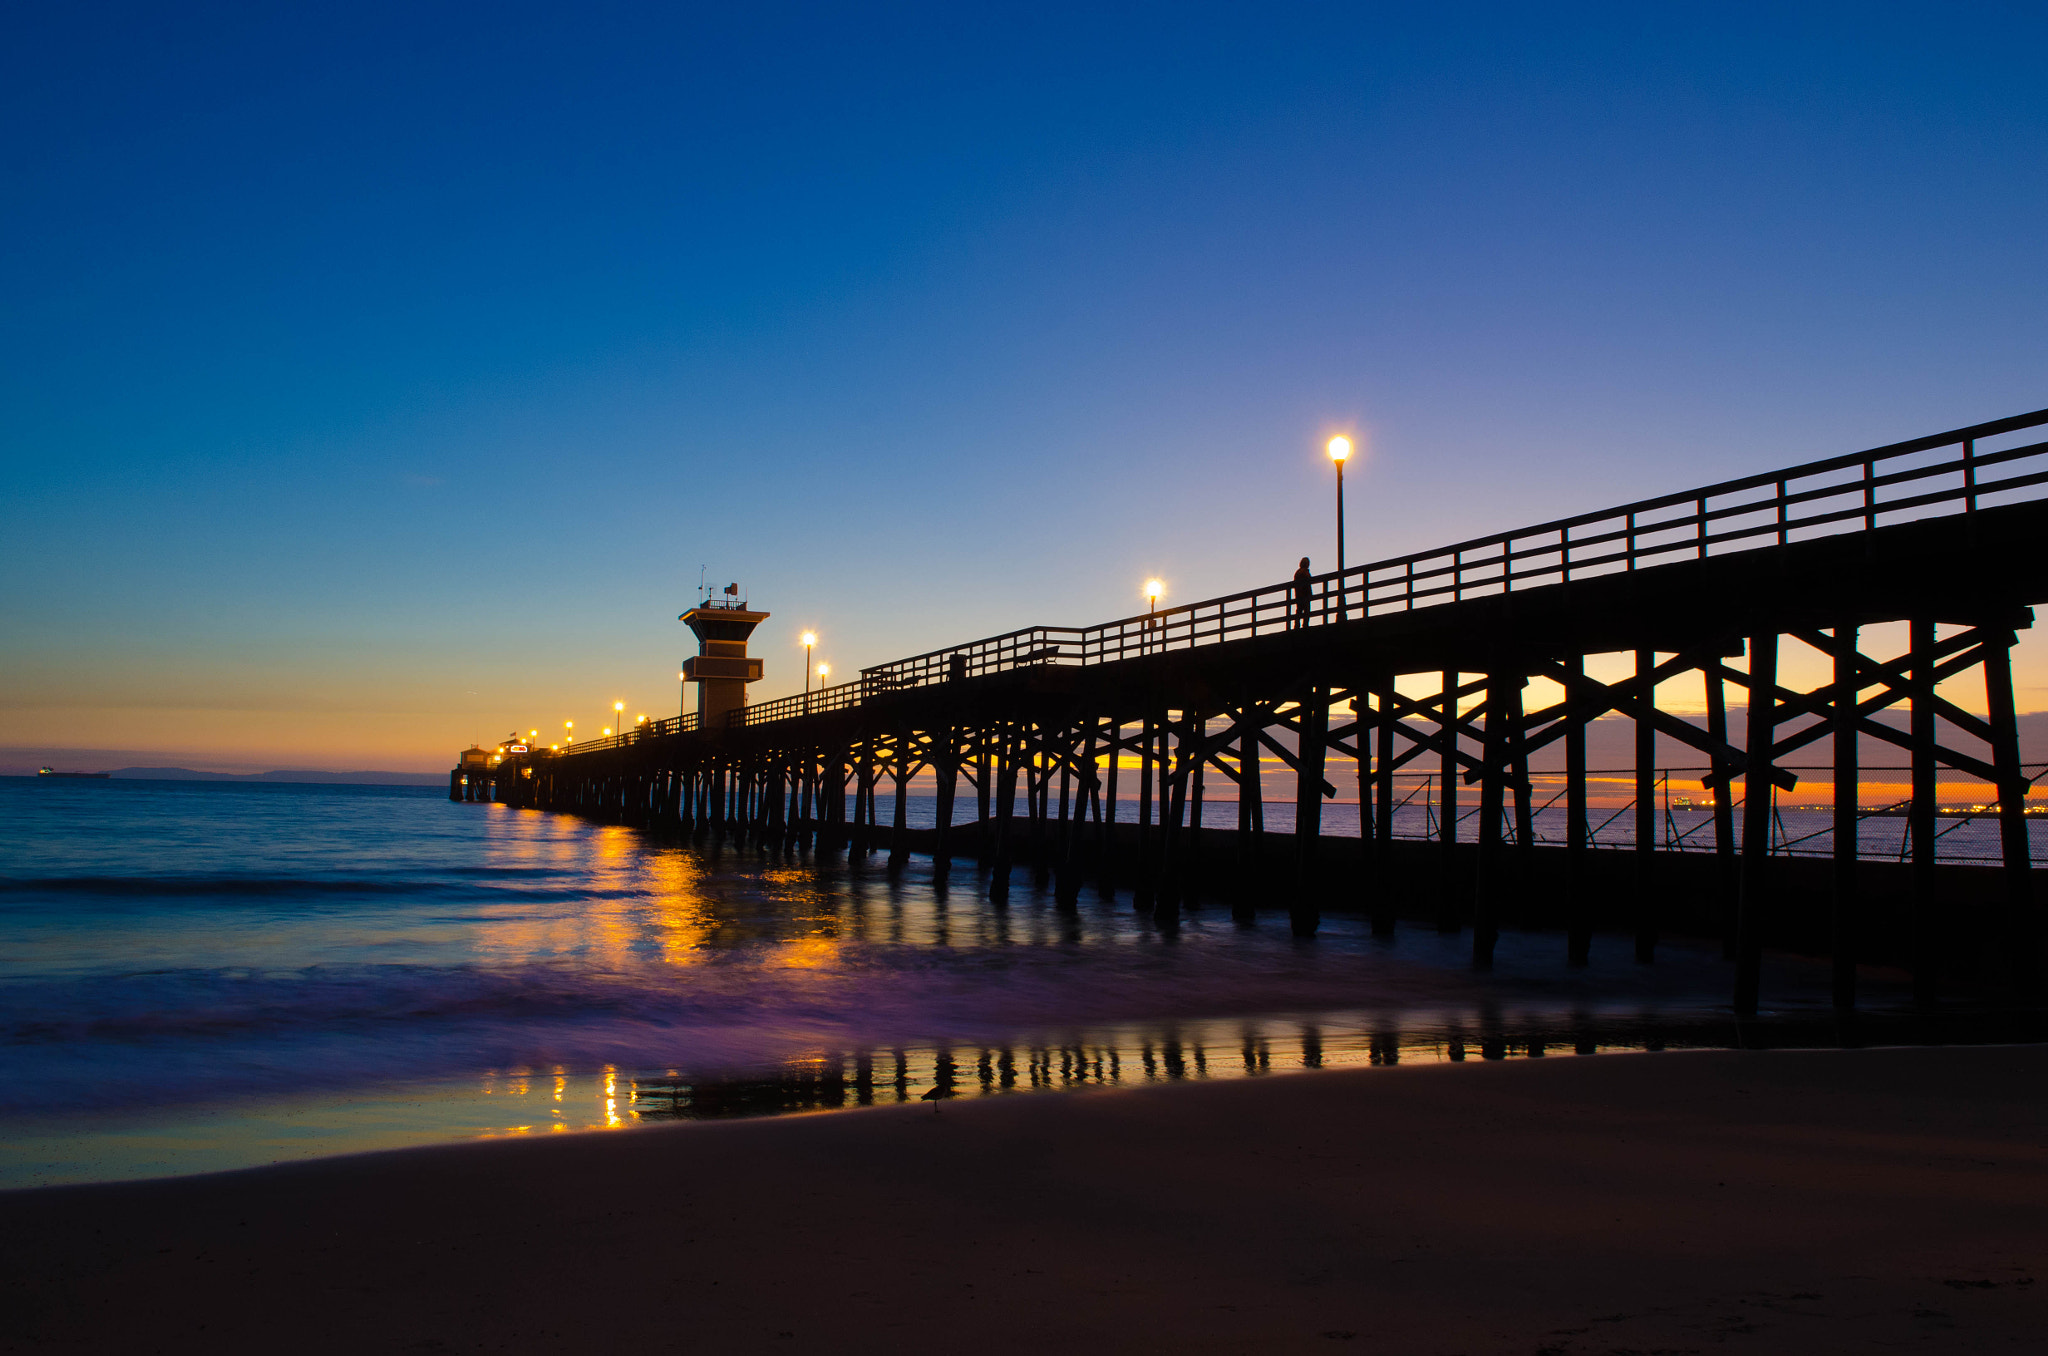 Photograph California Love by Mike Edwards on 500px